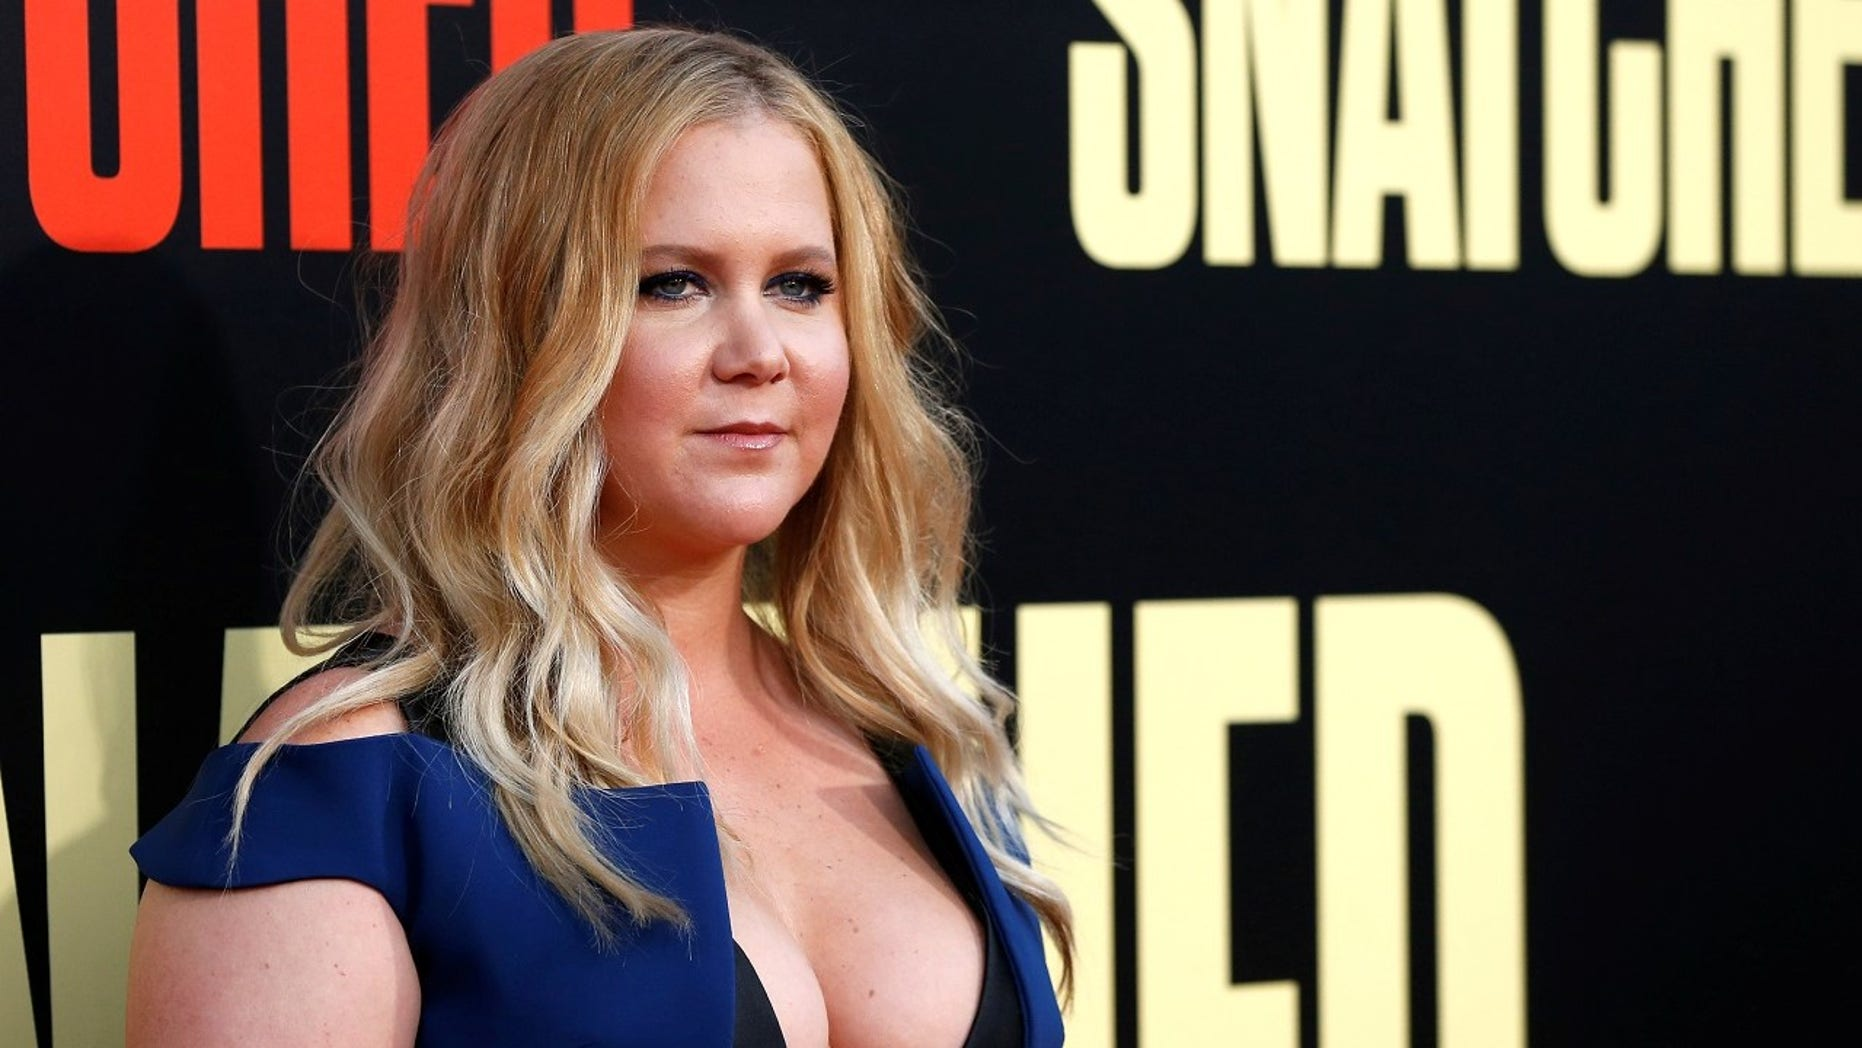 Amy Schumer revealed that she's pregnant with husband Chris Fisher